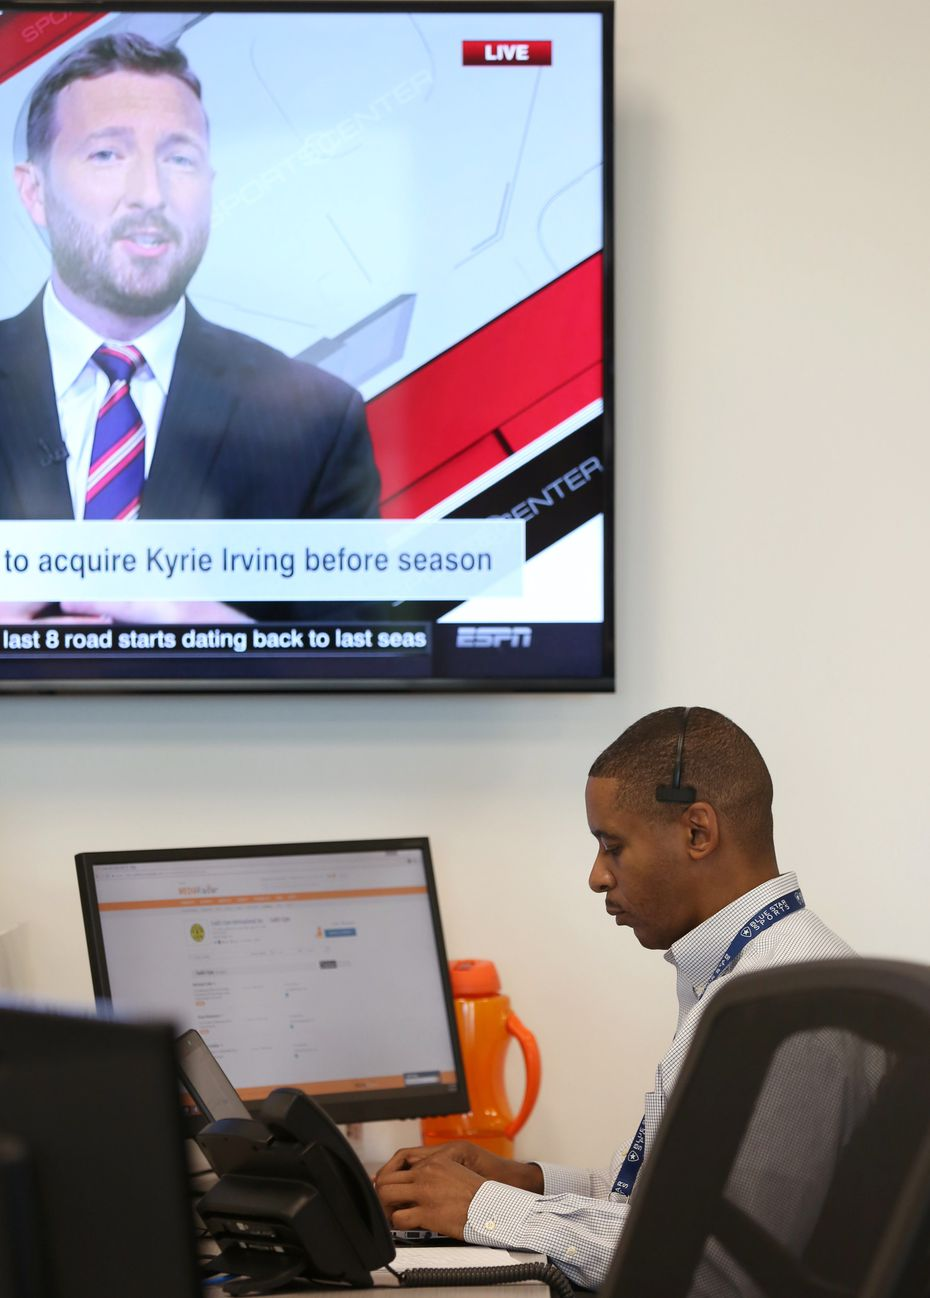 Darnell Cain, a digital sales manager at Blue Star Sports, works at the company's office at The Star in Frisco, Texas on Tuesday, Aug. 8, 2017.